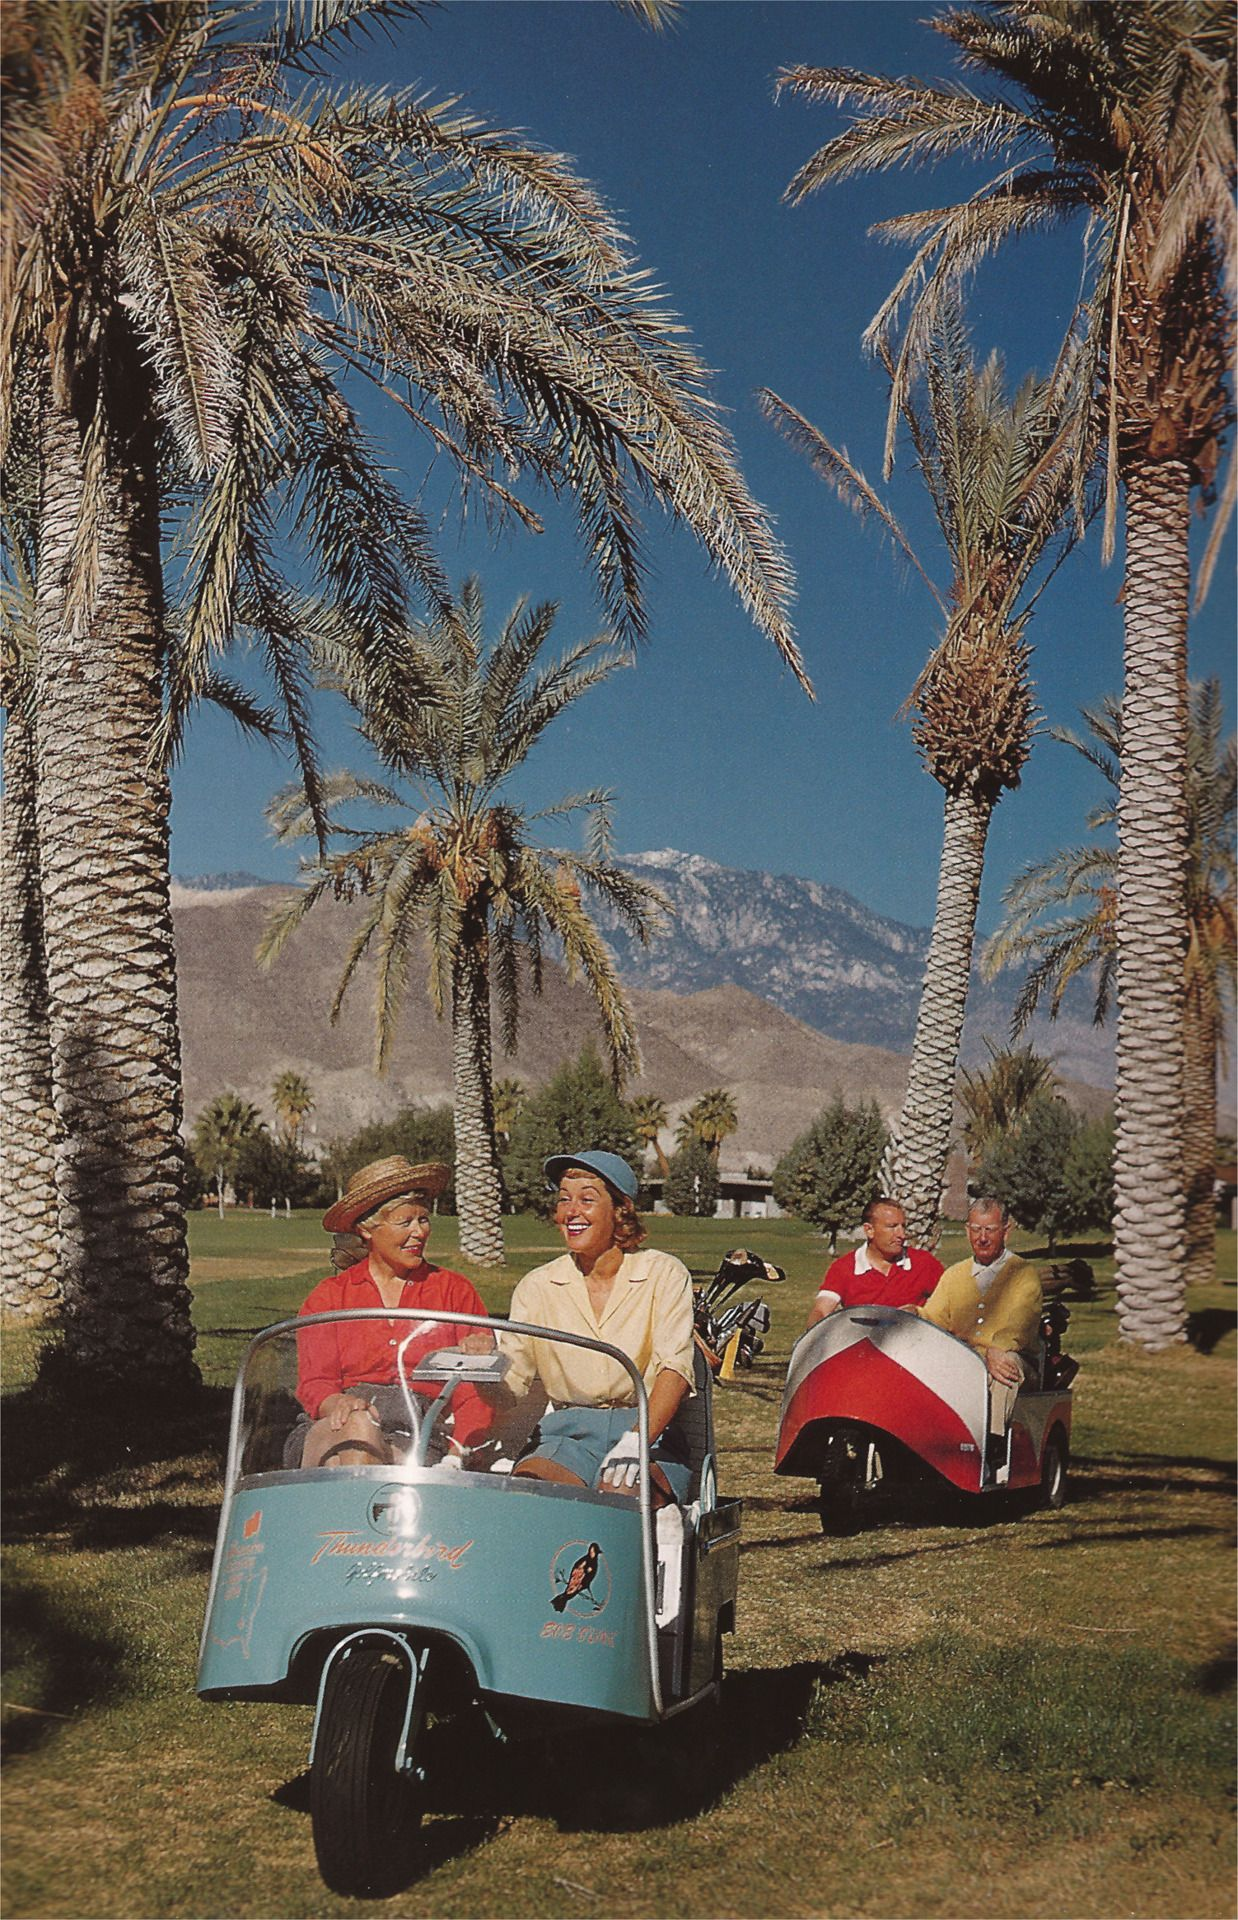 Vintage golf carts golf carts pinterest vintage golf for Thunderbird golf course palm springs